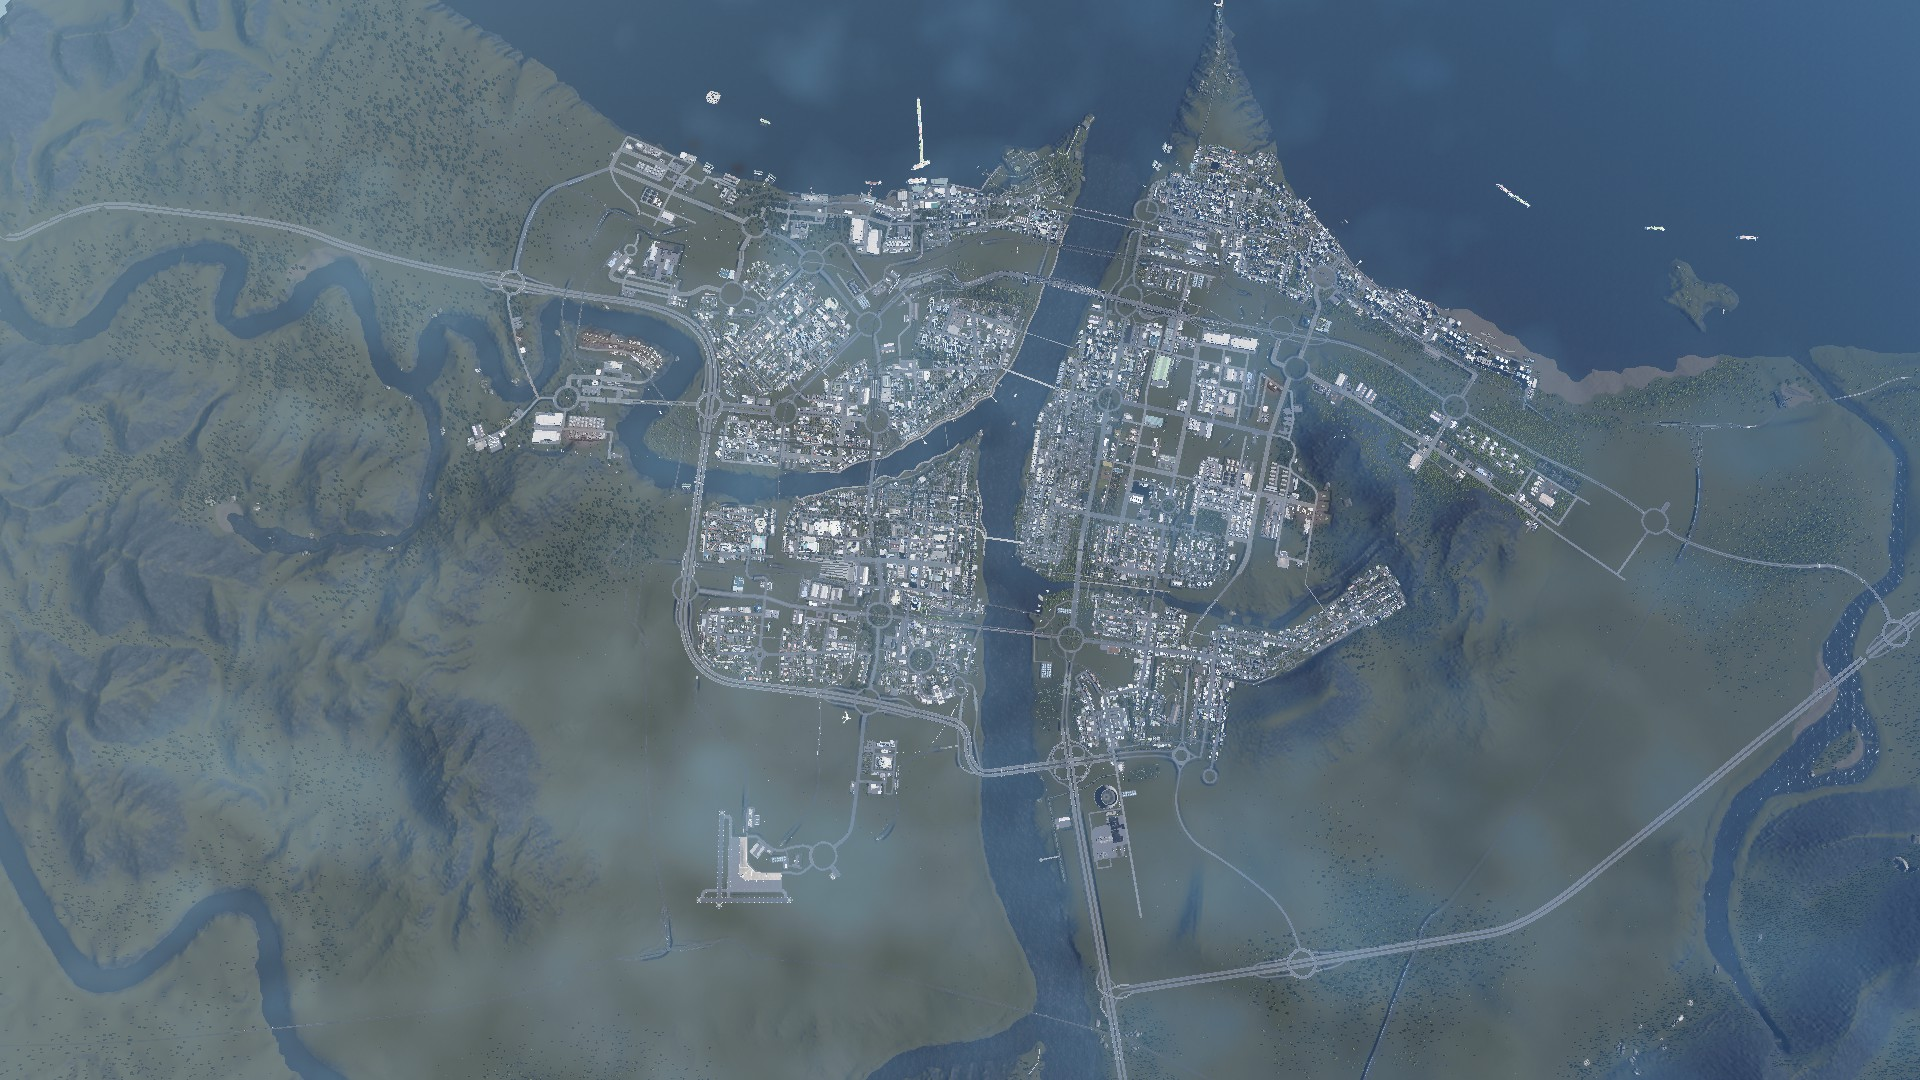 Manukau Continues to Grow, Using the Toolkit to Make the City Function #CitiesSkylines